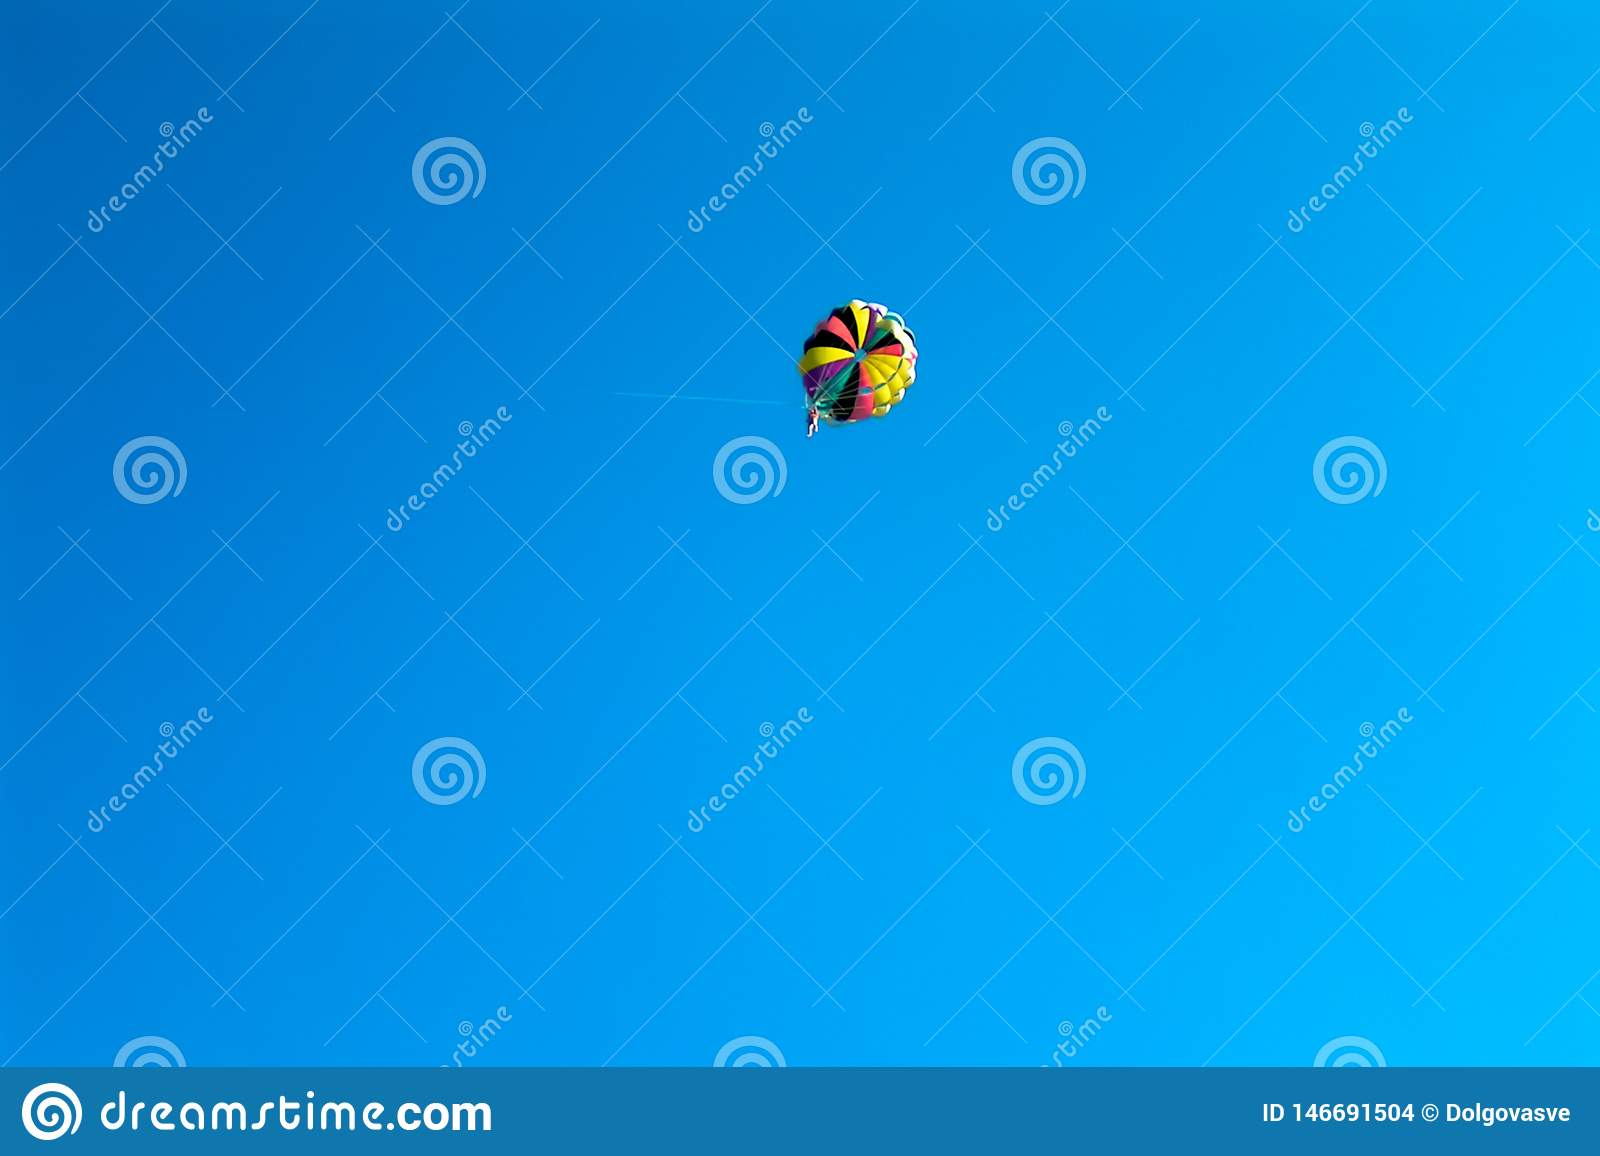 Skydiver flying on colored parachute in blue clear sky